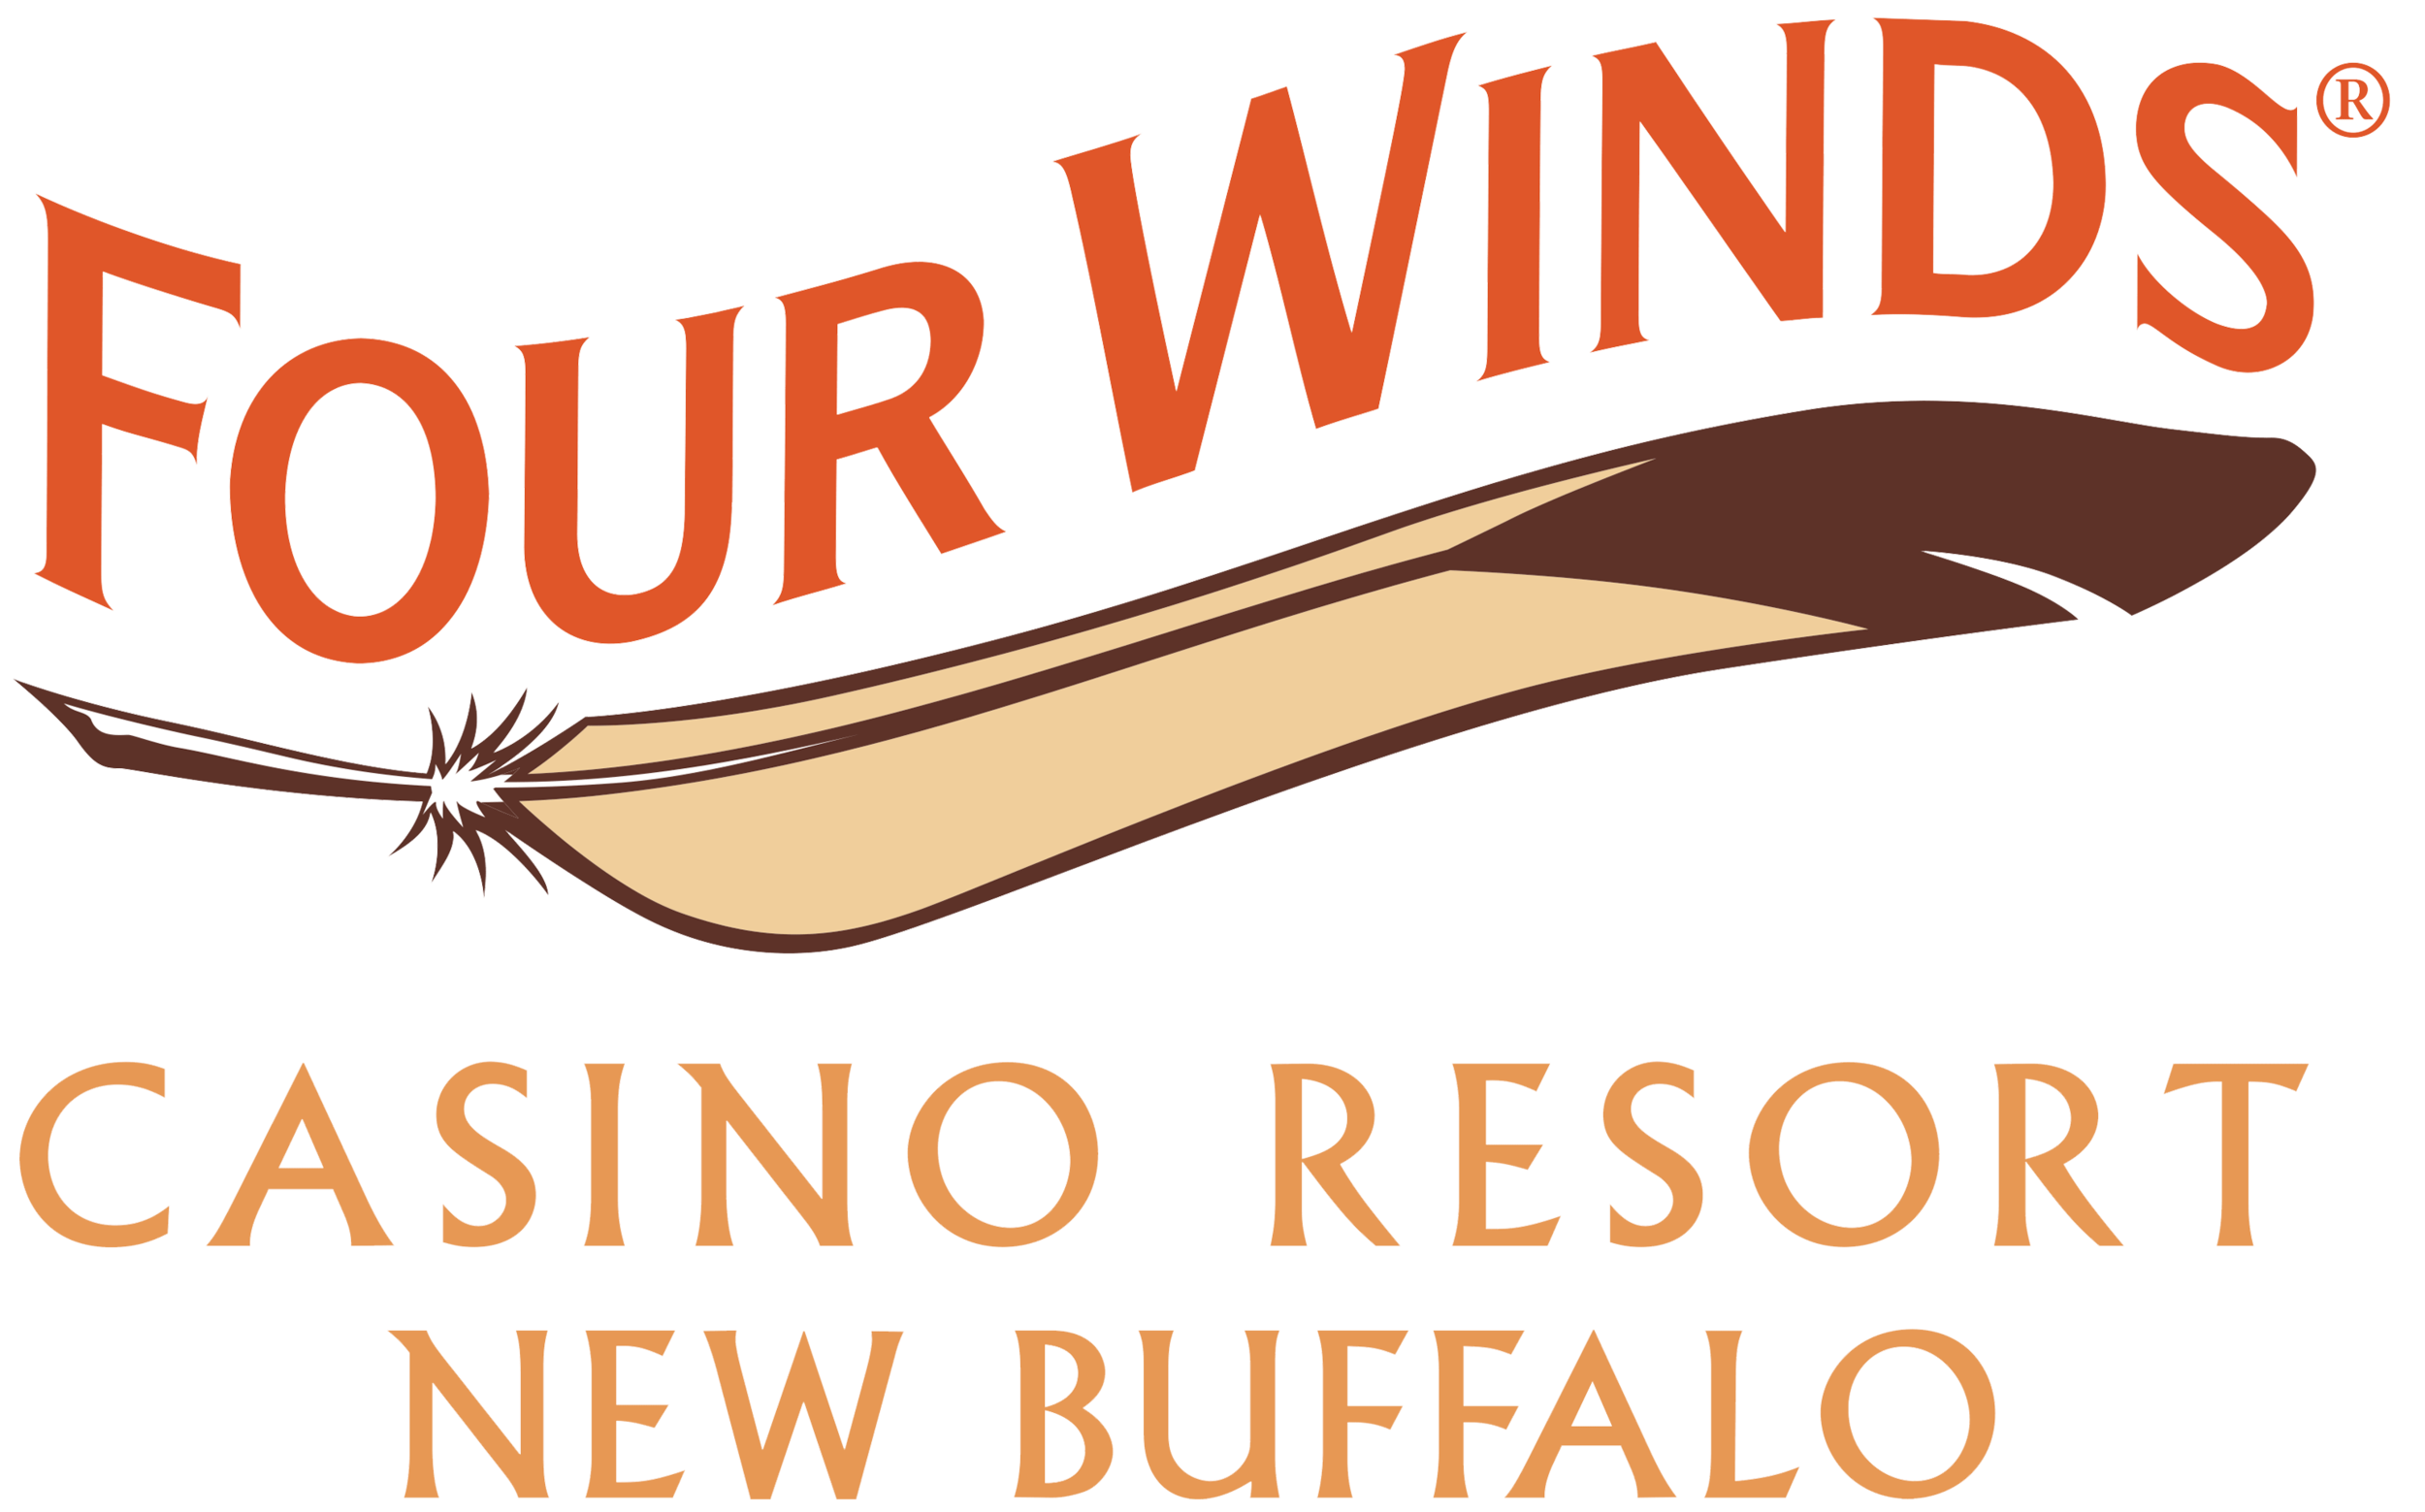 Four-Winds-Casino-New-Buffalo-logo.png